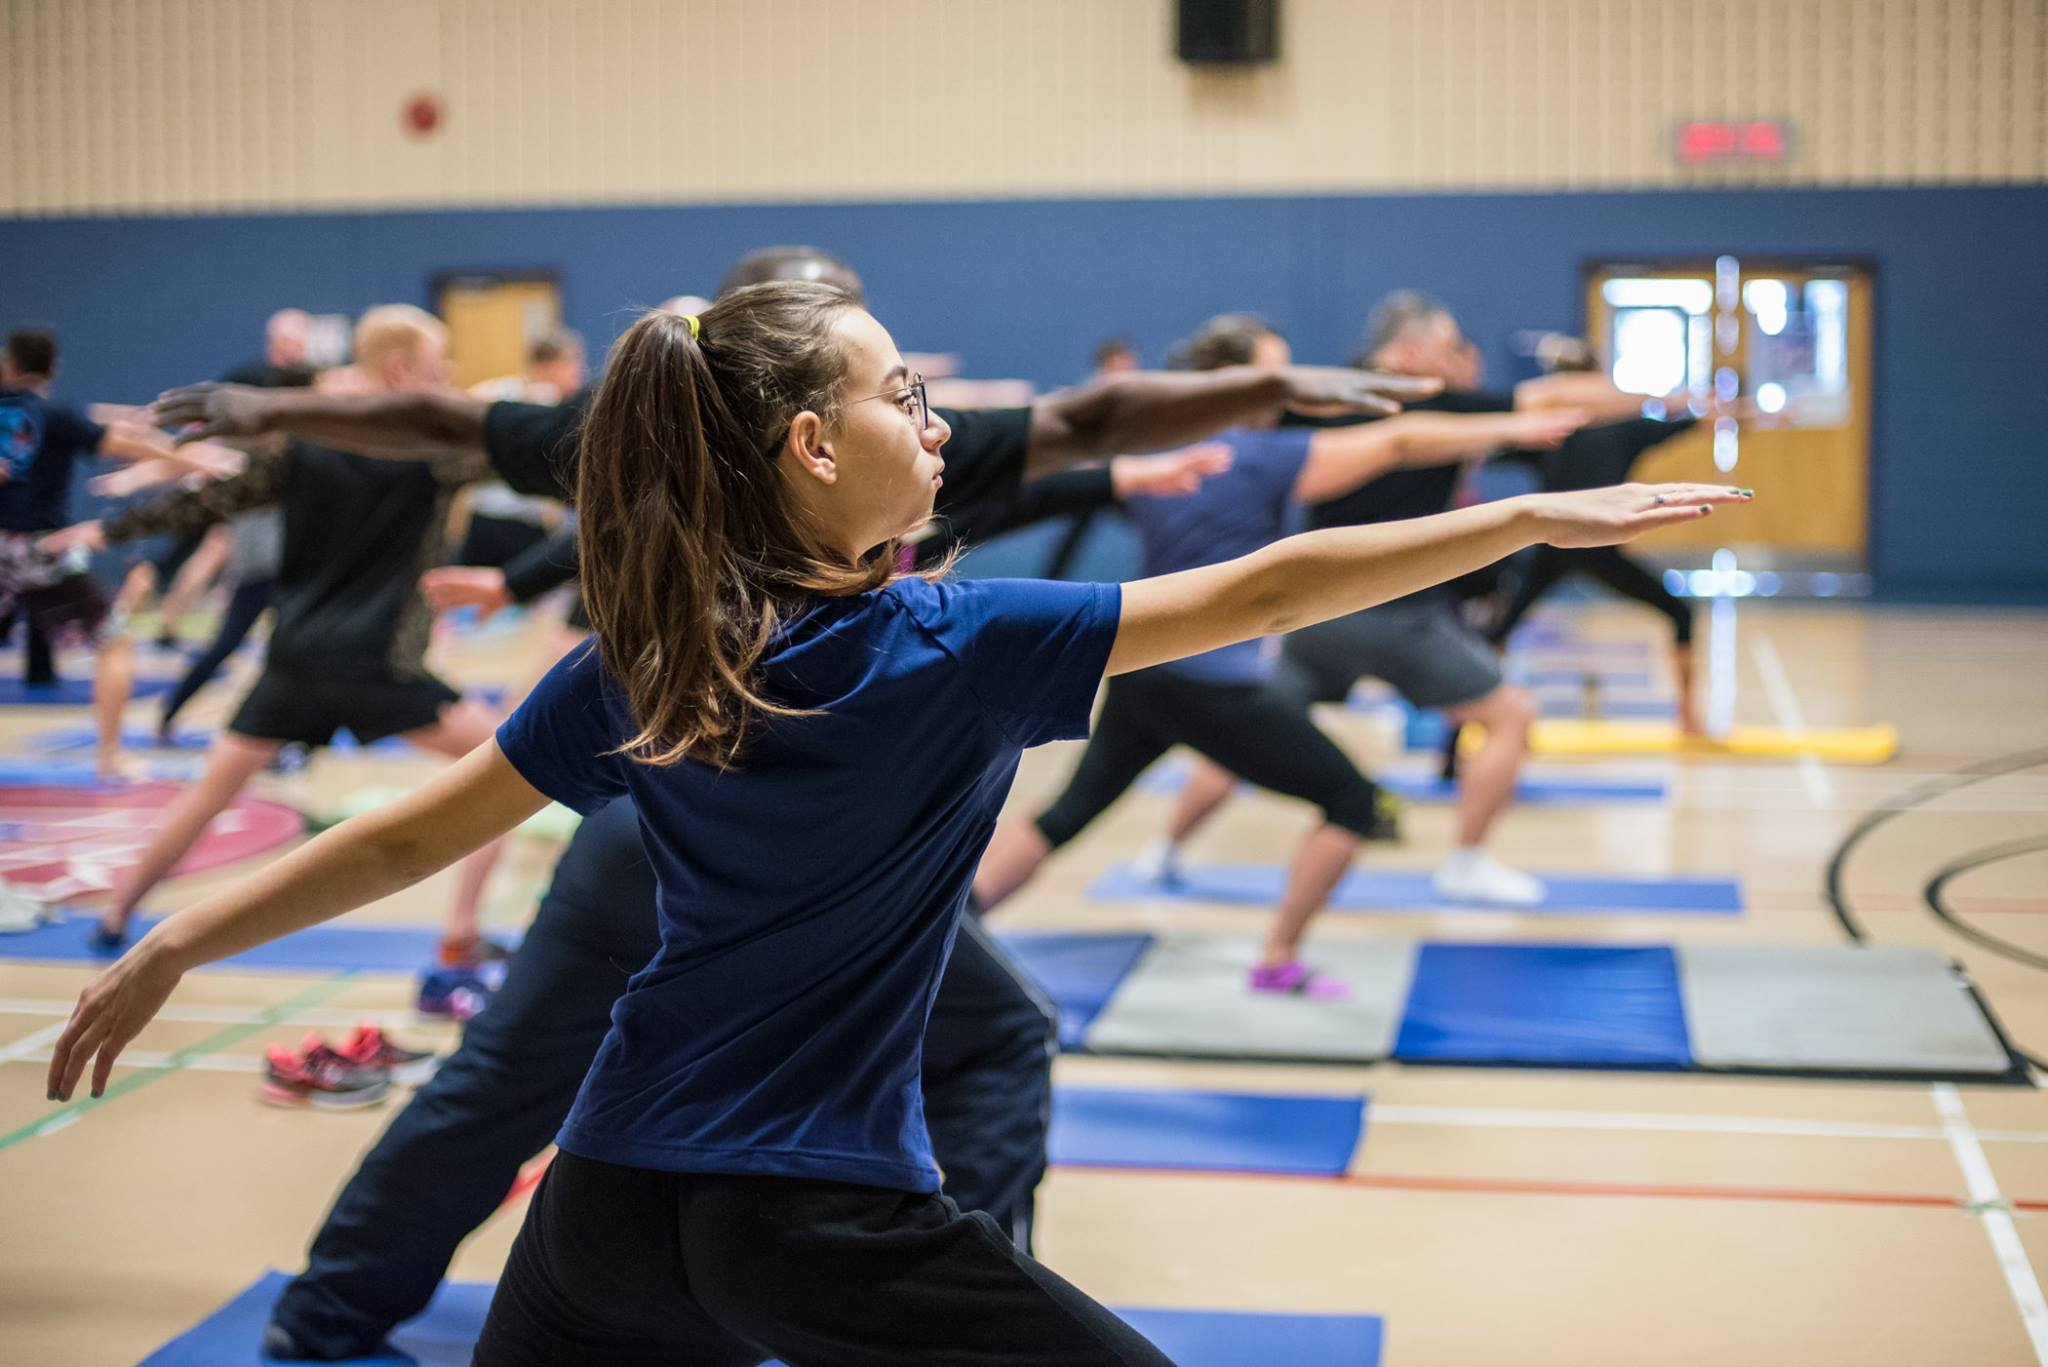 Marie-Lutine Vignal, daughter of Lieutenant Navy Delphine Bonnardot holds the Warrior 2 pose Members of the Defence Team of the 2nd Canadian Division and Joint Task Force (East) participate in Exercise YOGA 2017 (# ExYOGA2017), a yoga session live-streamed from several locations for all – women and men, both civilian and military  – to highlight International Women's Day at Canadian Forces Base/ Area Support Unit Montreal on March 8, 2017. Photo: Corporal Djalma Vuong-De Ramos, 2nd Canadian Division/Joint Task Force (East) ©2017 DND/MDN Canada